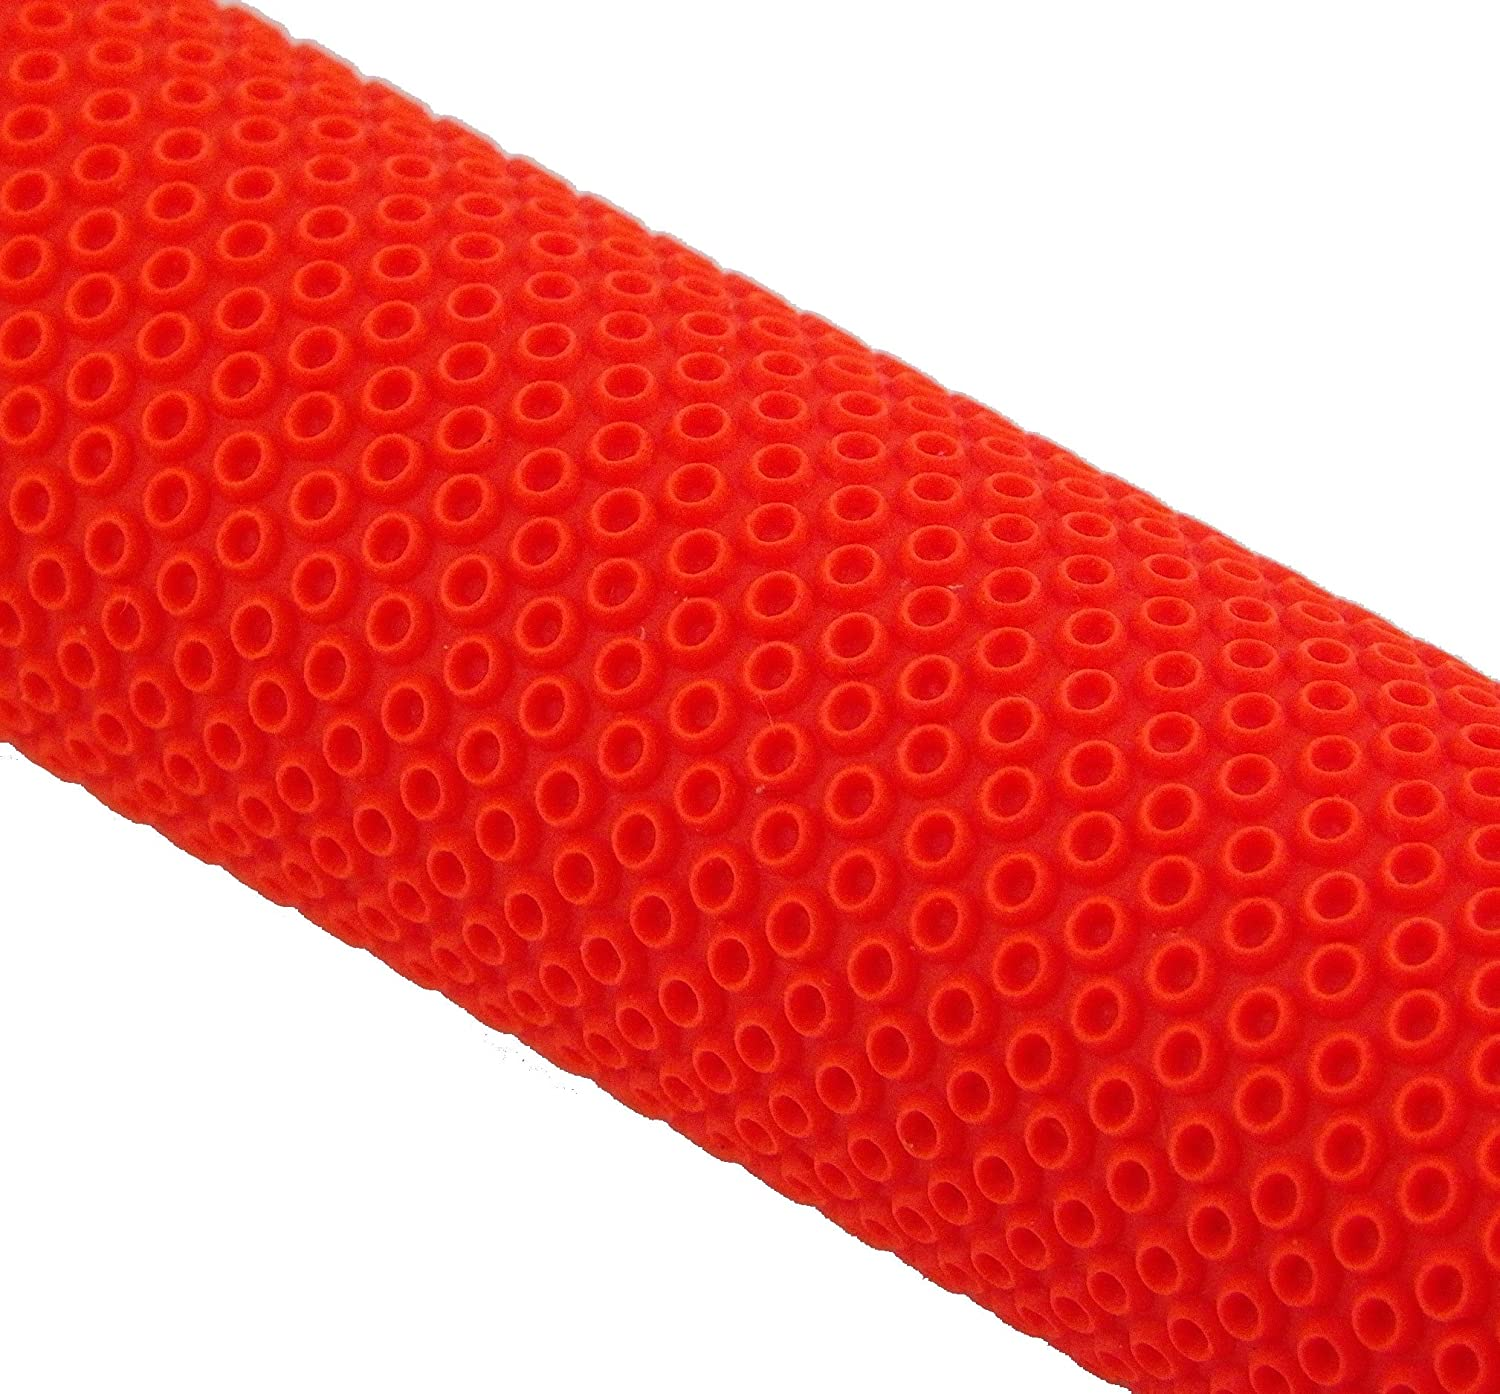 Opttiuuq OCFX2 Cricket Bat Grip Rubber with PE Octopus Technology Pure Performance Products RED